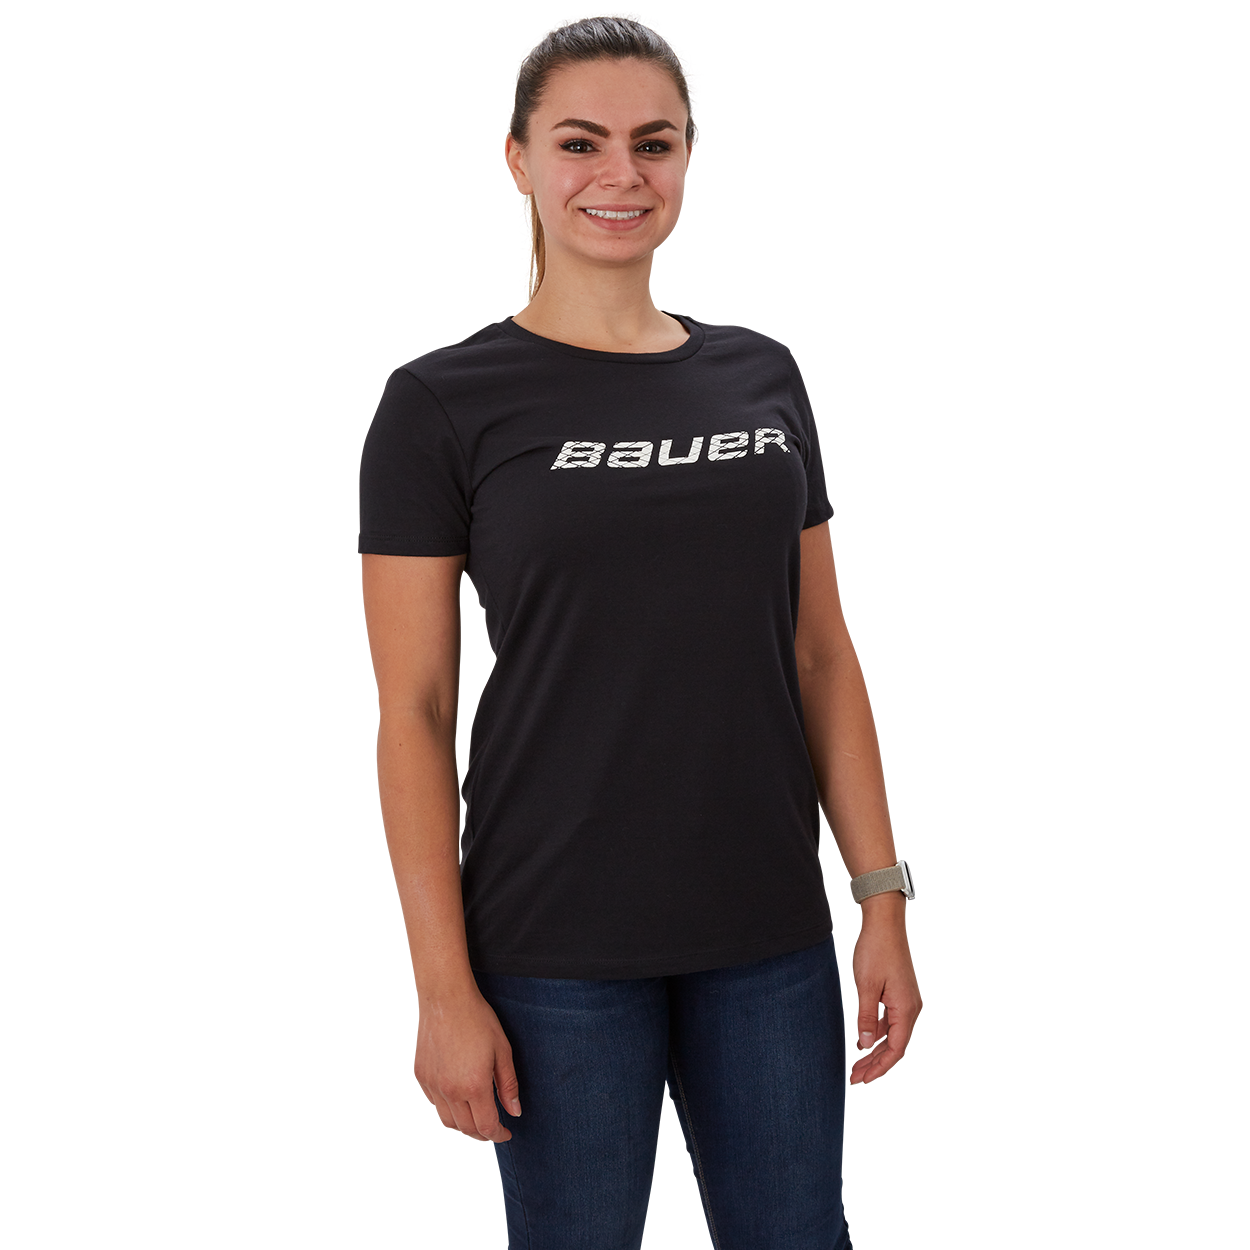 Short Sleeve Women's T-Shirt with Graphic,Schwarz,Medium